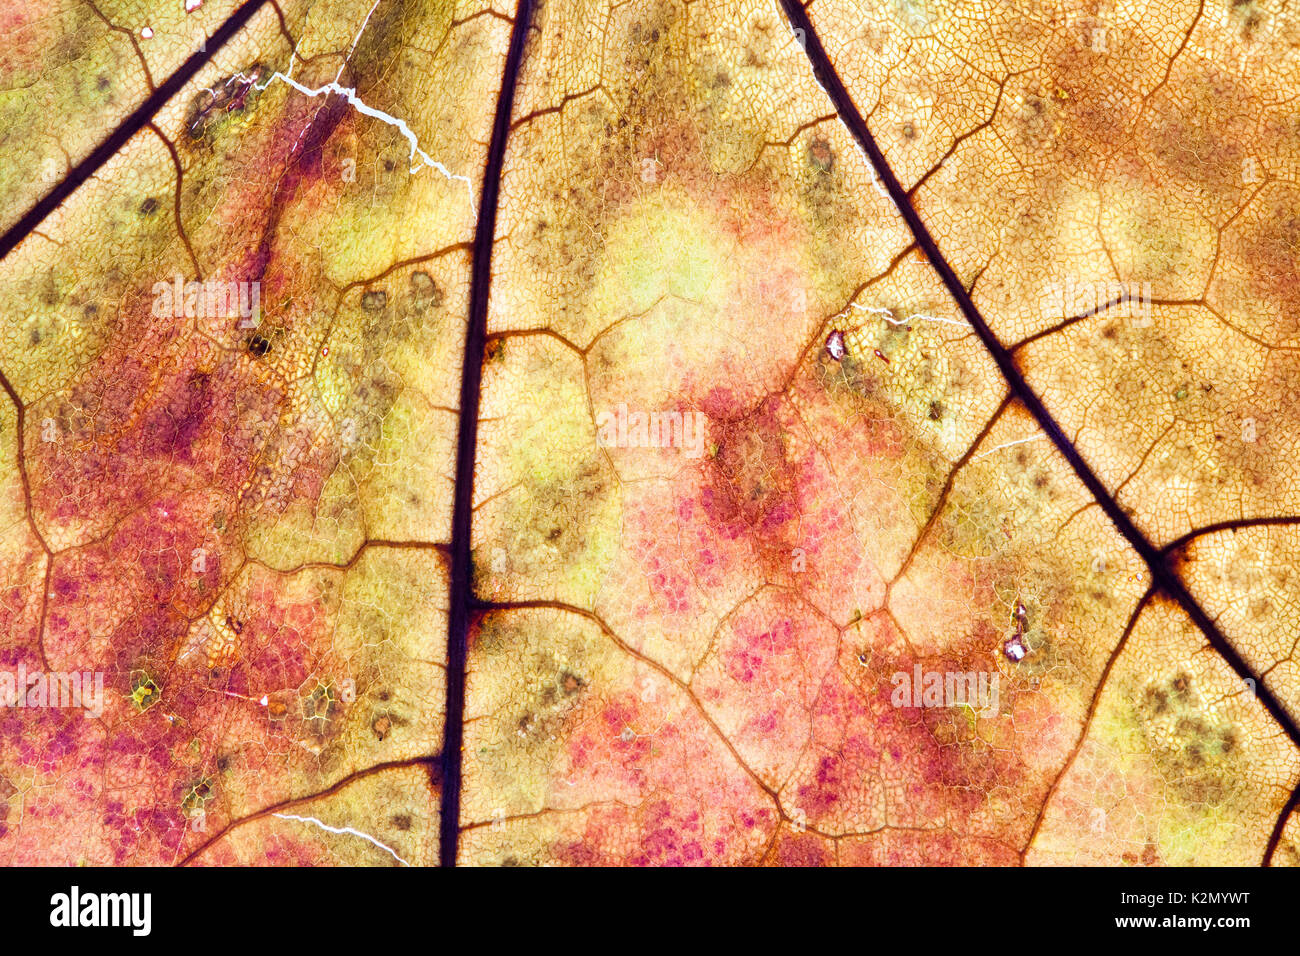 Maple leaf textured pattern macro view, vintage herbarium. Abstract background, detailed soft focus - Stock Image